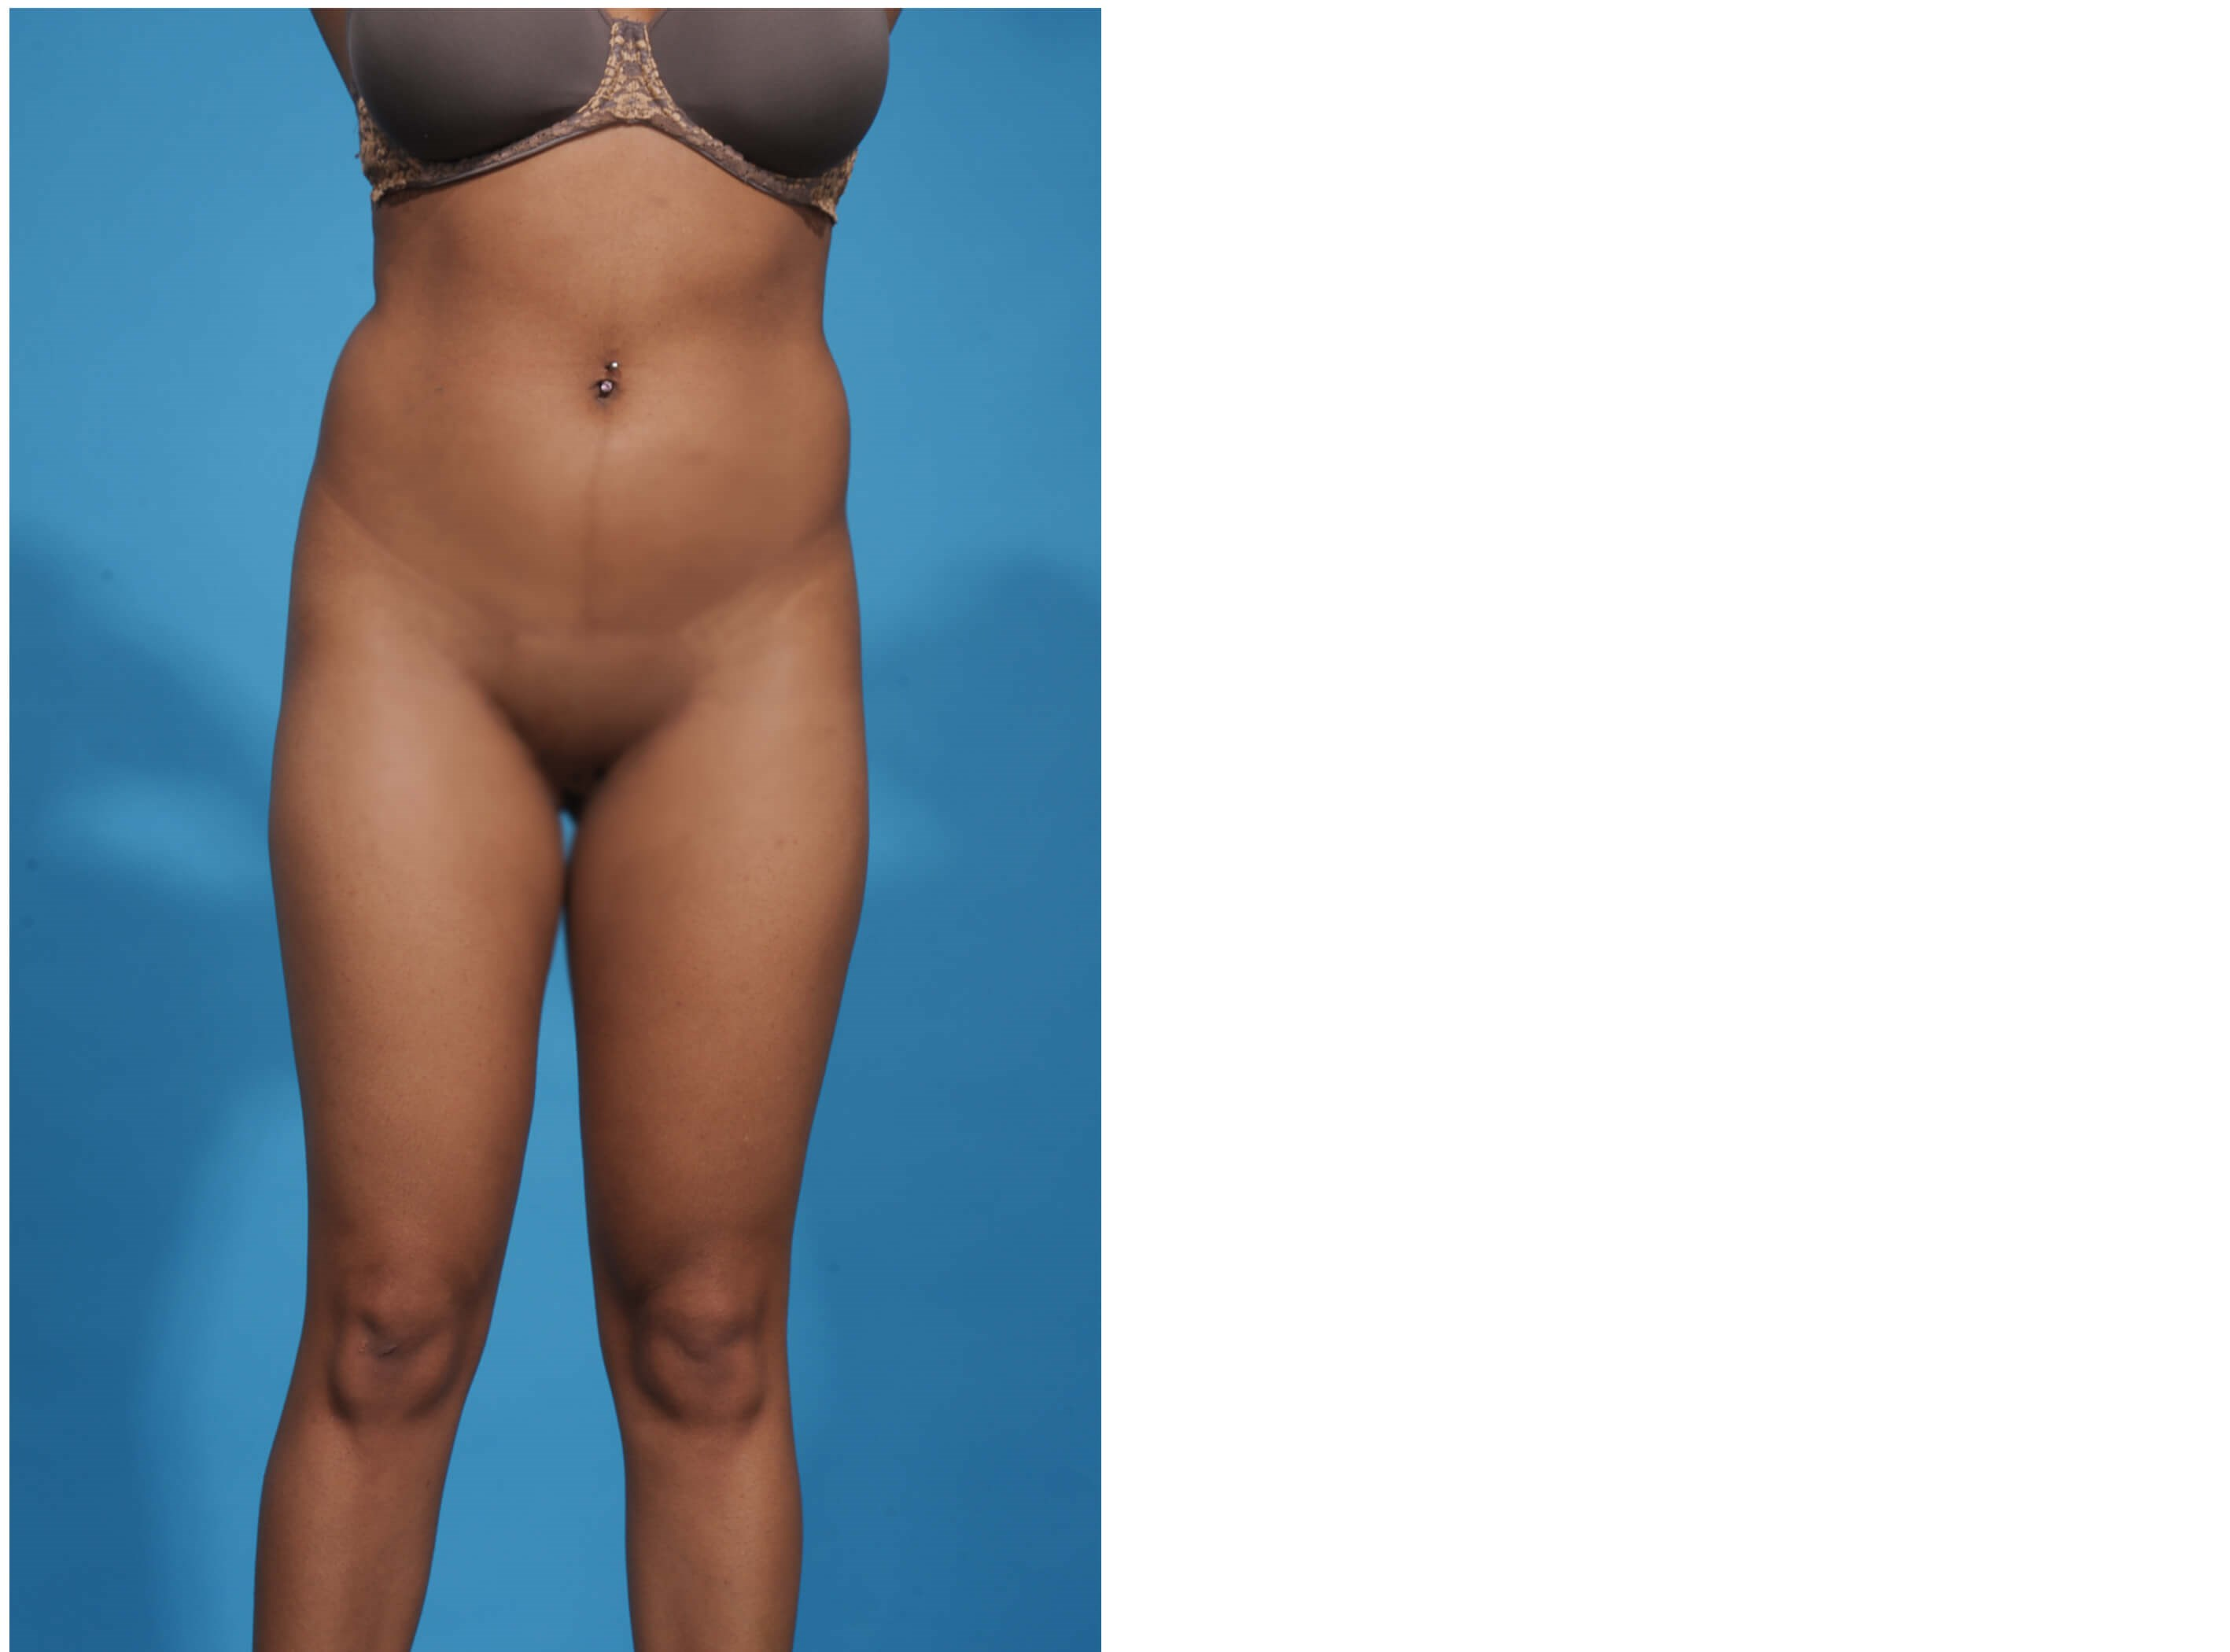 LIPOSUCTION CIRCUMFERENTIAL Before